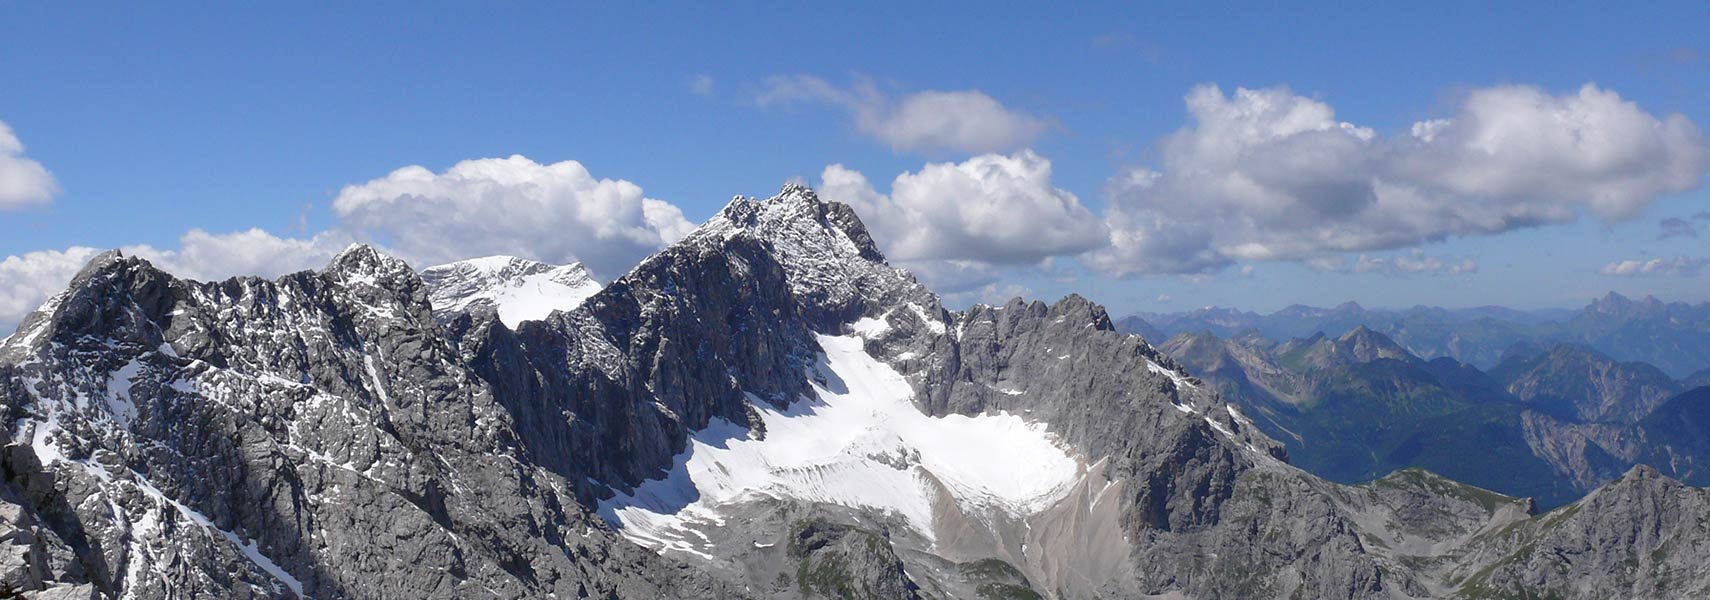 Zugspitze summit and Höllentalferner glacier, highest mountain in Germany